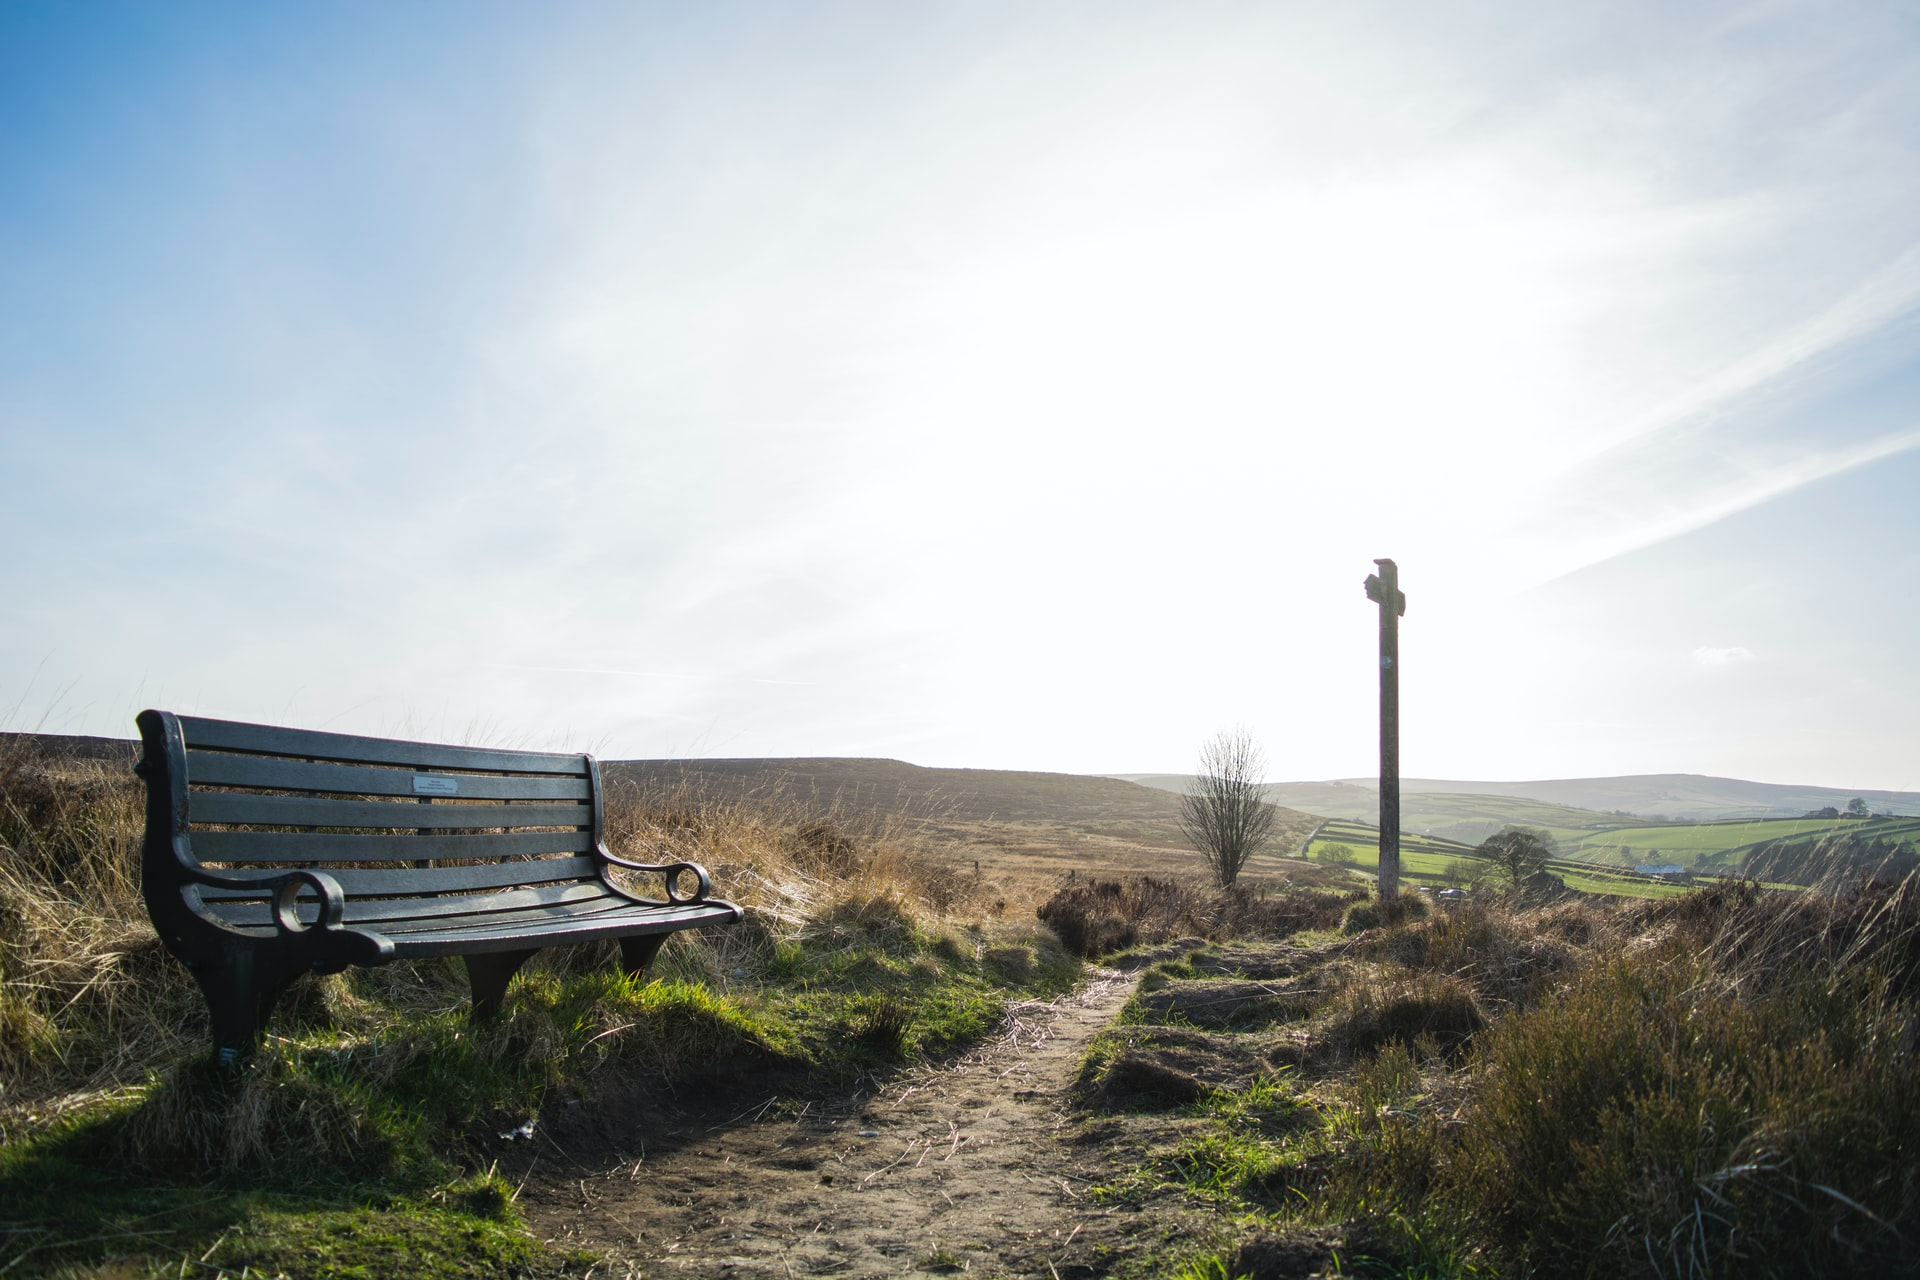 bench-and-signpost-on-vast-moor-in-bronte-country-haworth